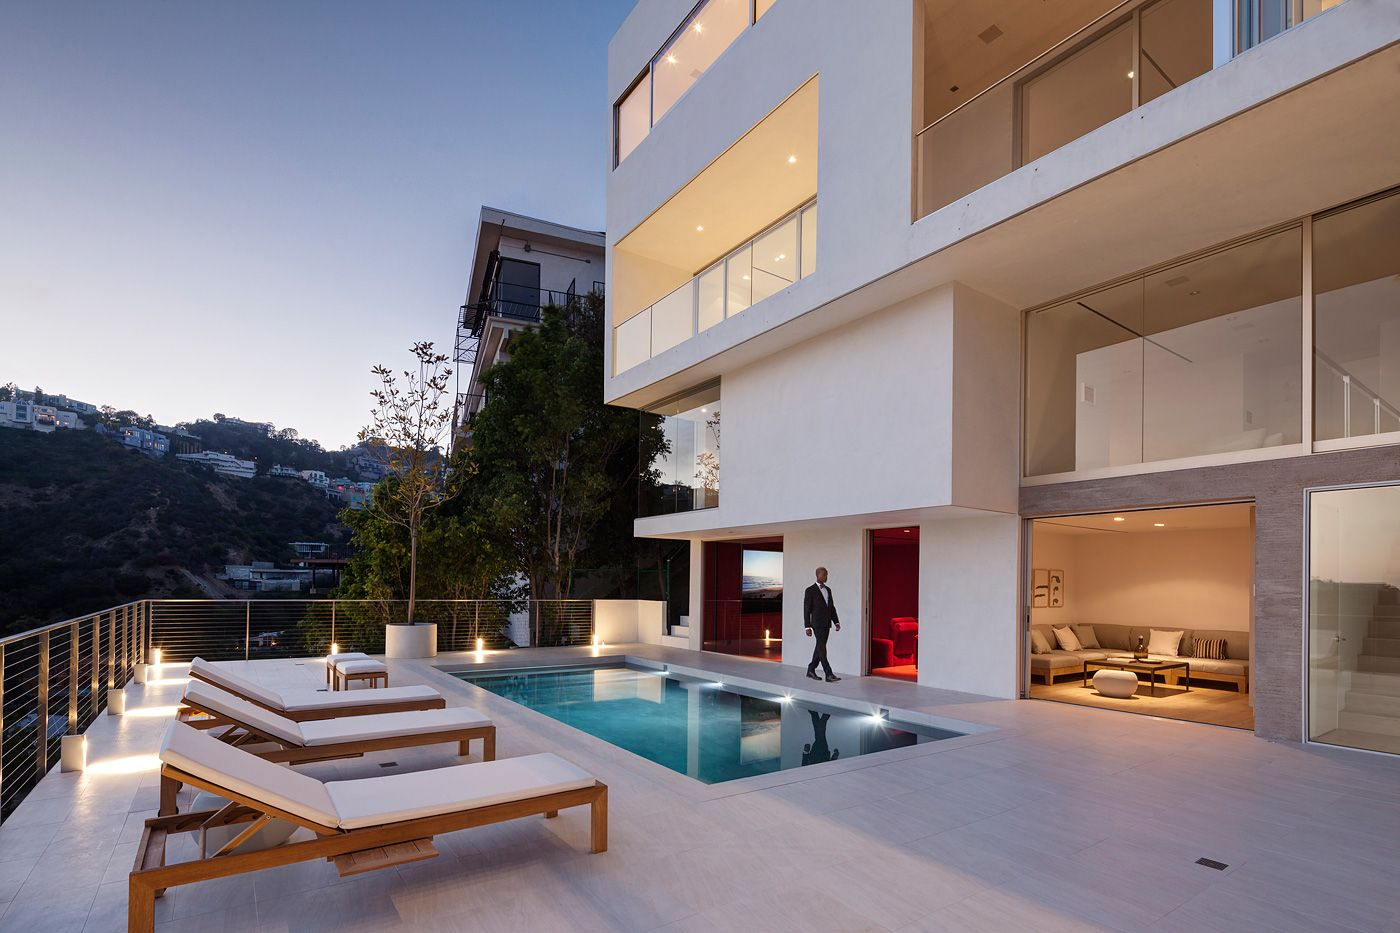 Haus am Sunset Plaza Drive in West Hollywood, Los Angeles | Haus ...